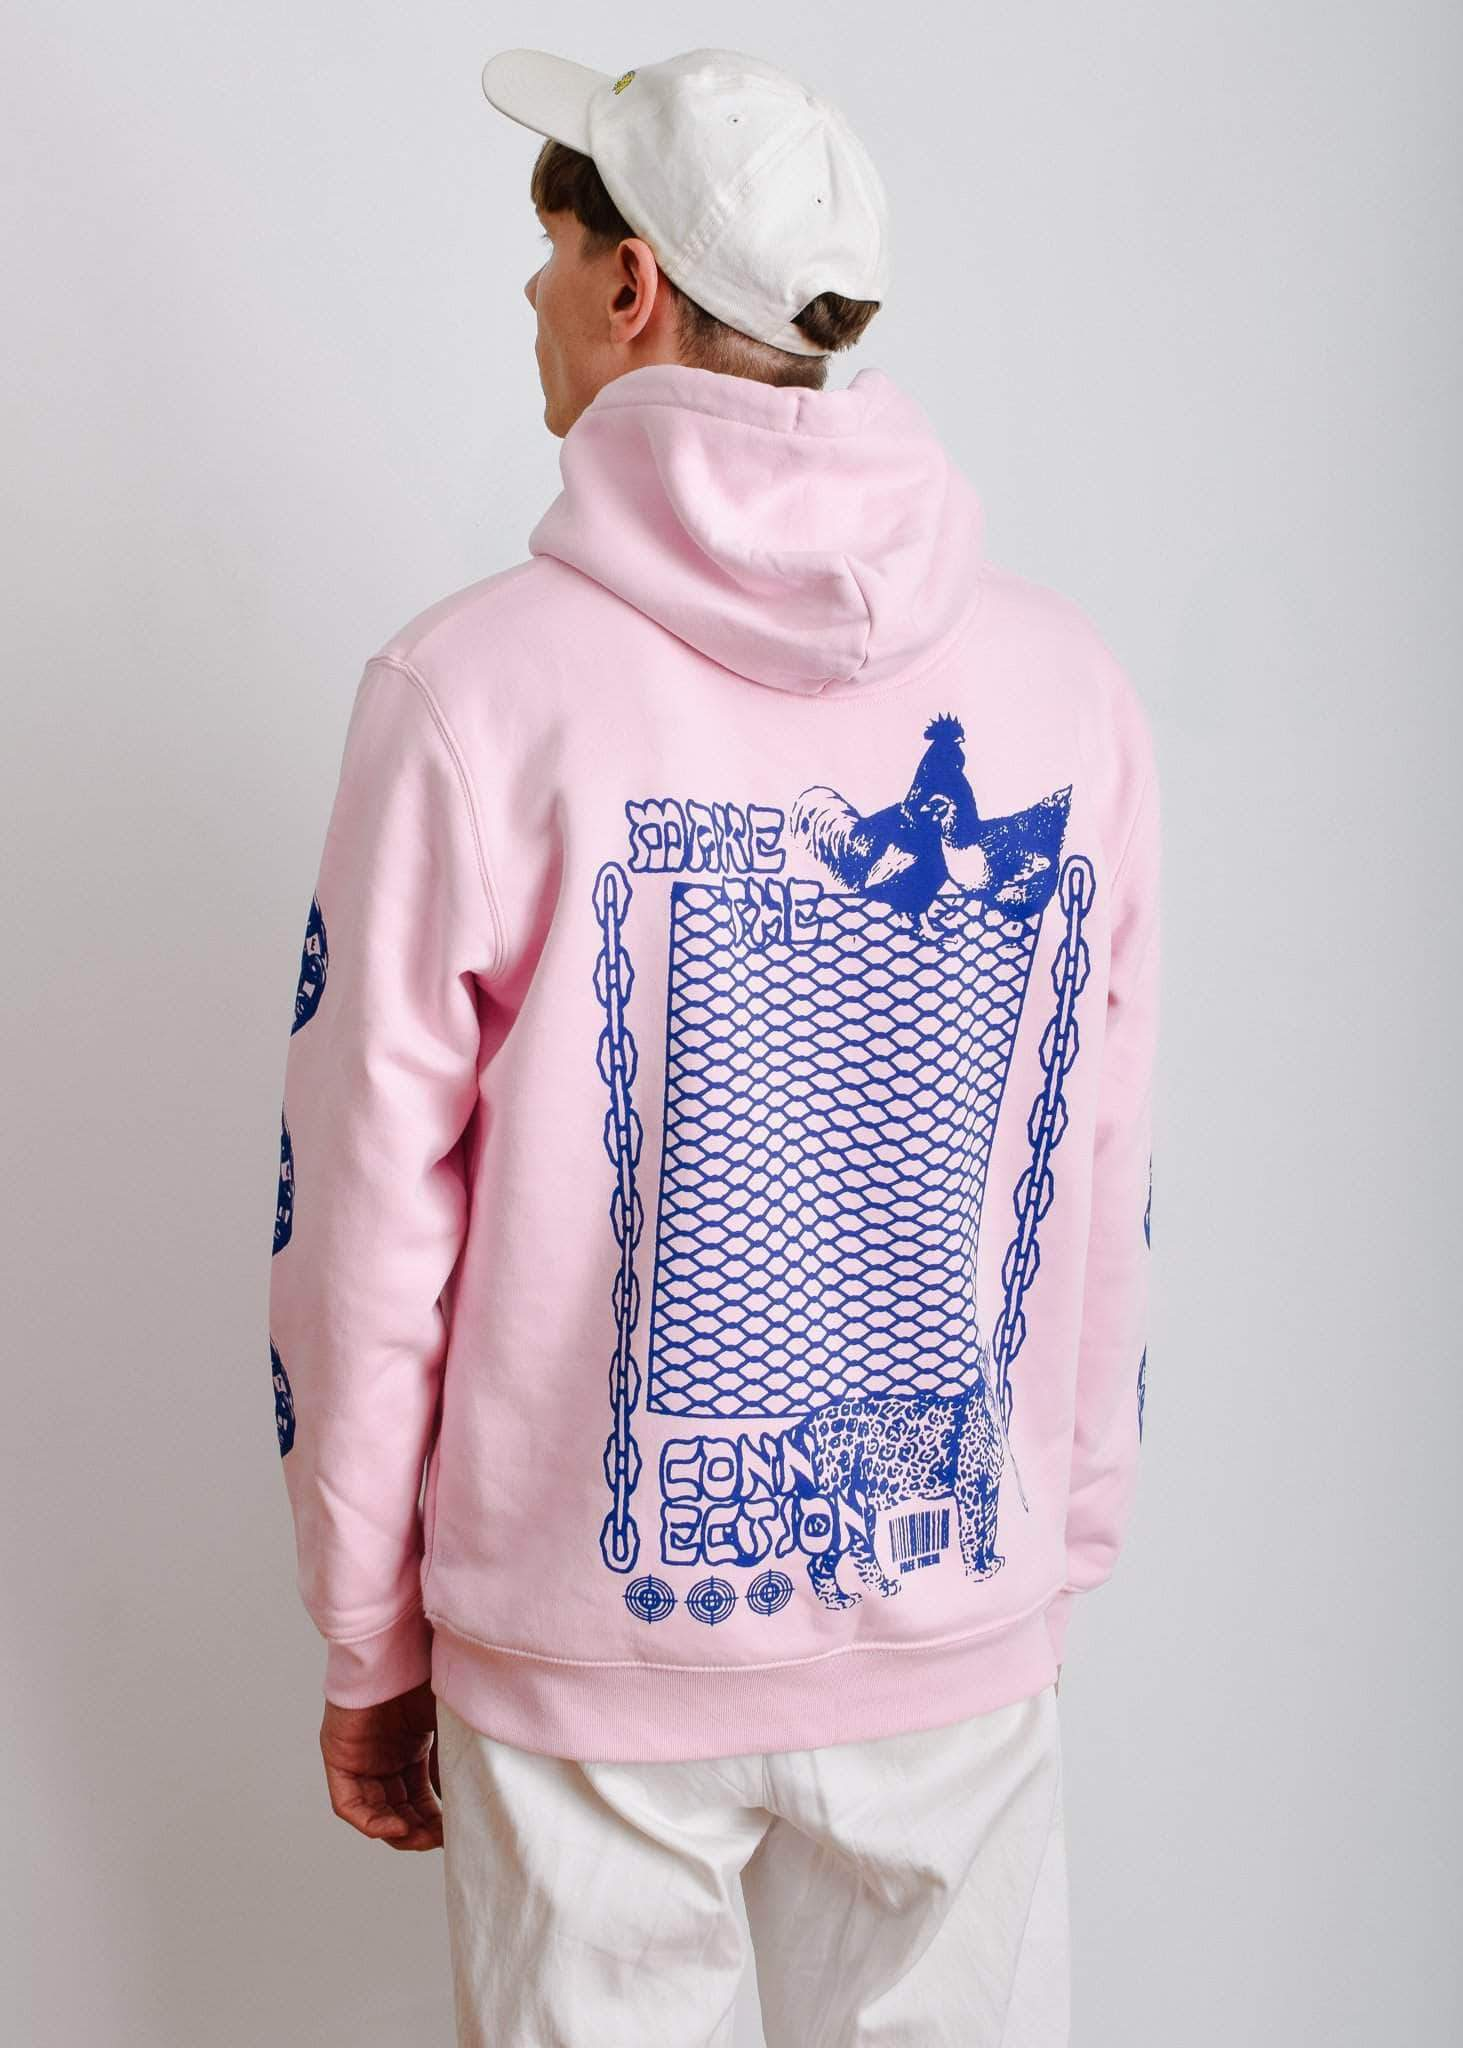 PLANT FACED CLOTHING: Hoodies - Make The Connection Hoodie - Pink x Blue - ORGANIC X RECYCLED, Vegan Clothing